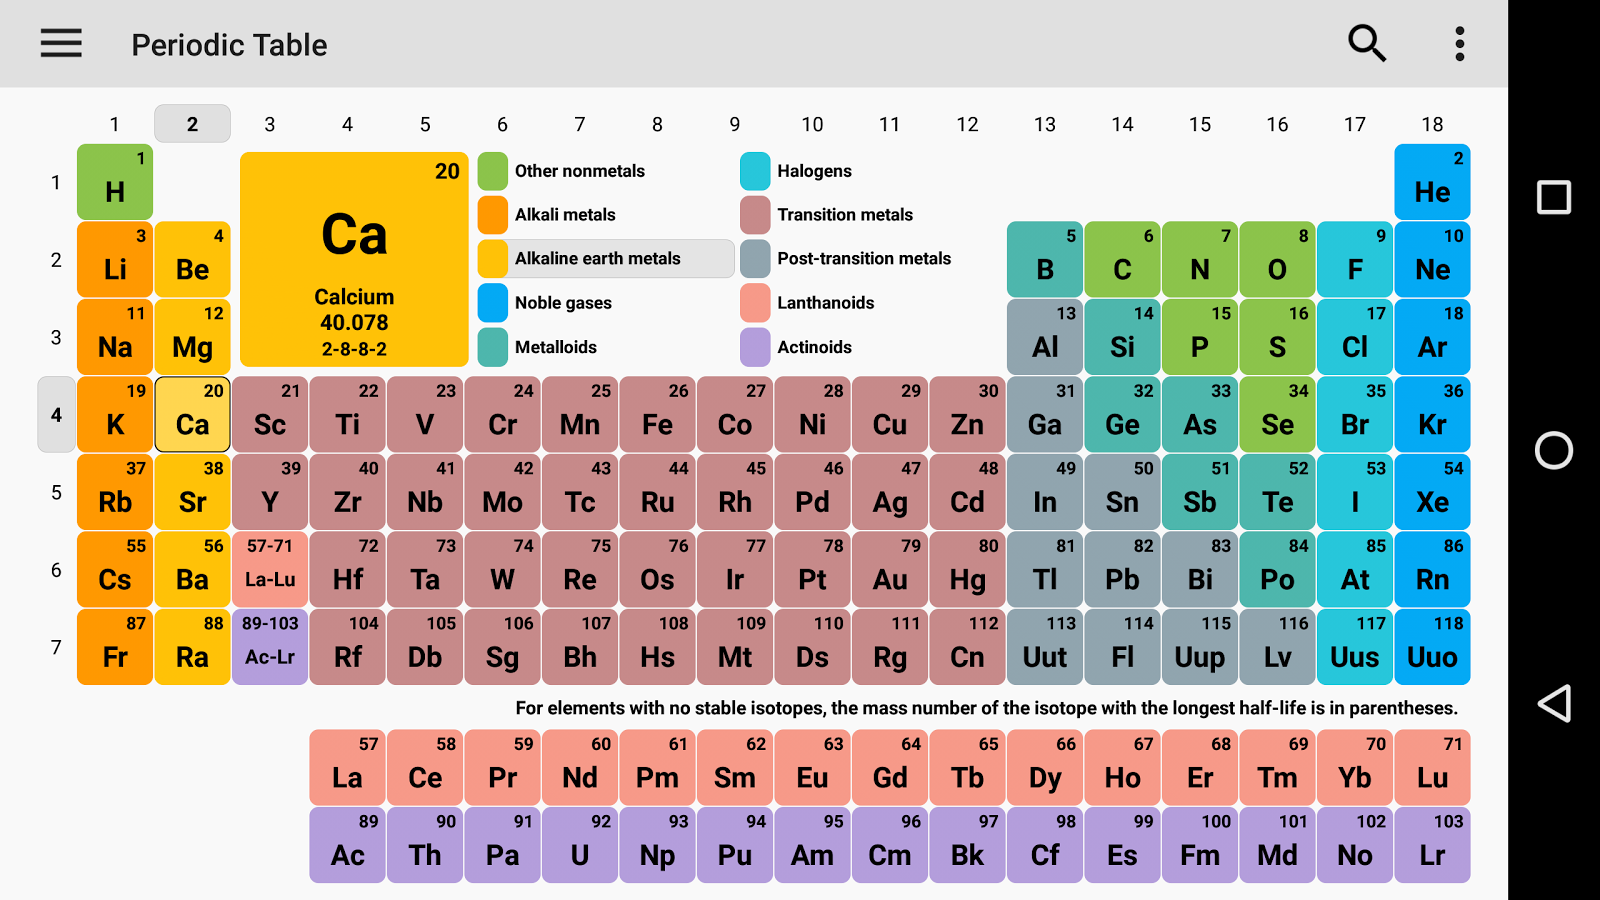 Periodic table has new names for four elements grab the knowledge gets its name from state of tennesseeby oak ridge national laboratory ogenesson symbol og in honour of scientist yuri oganessian new york urtaz Images